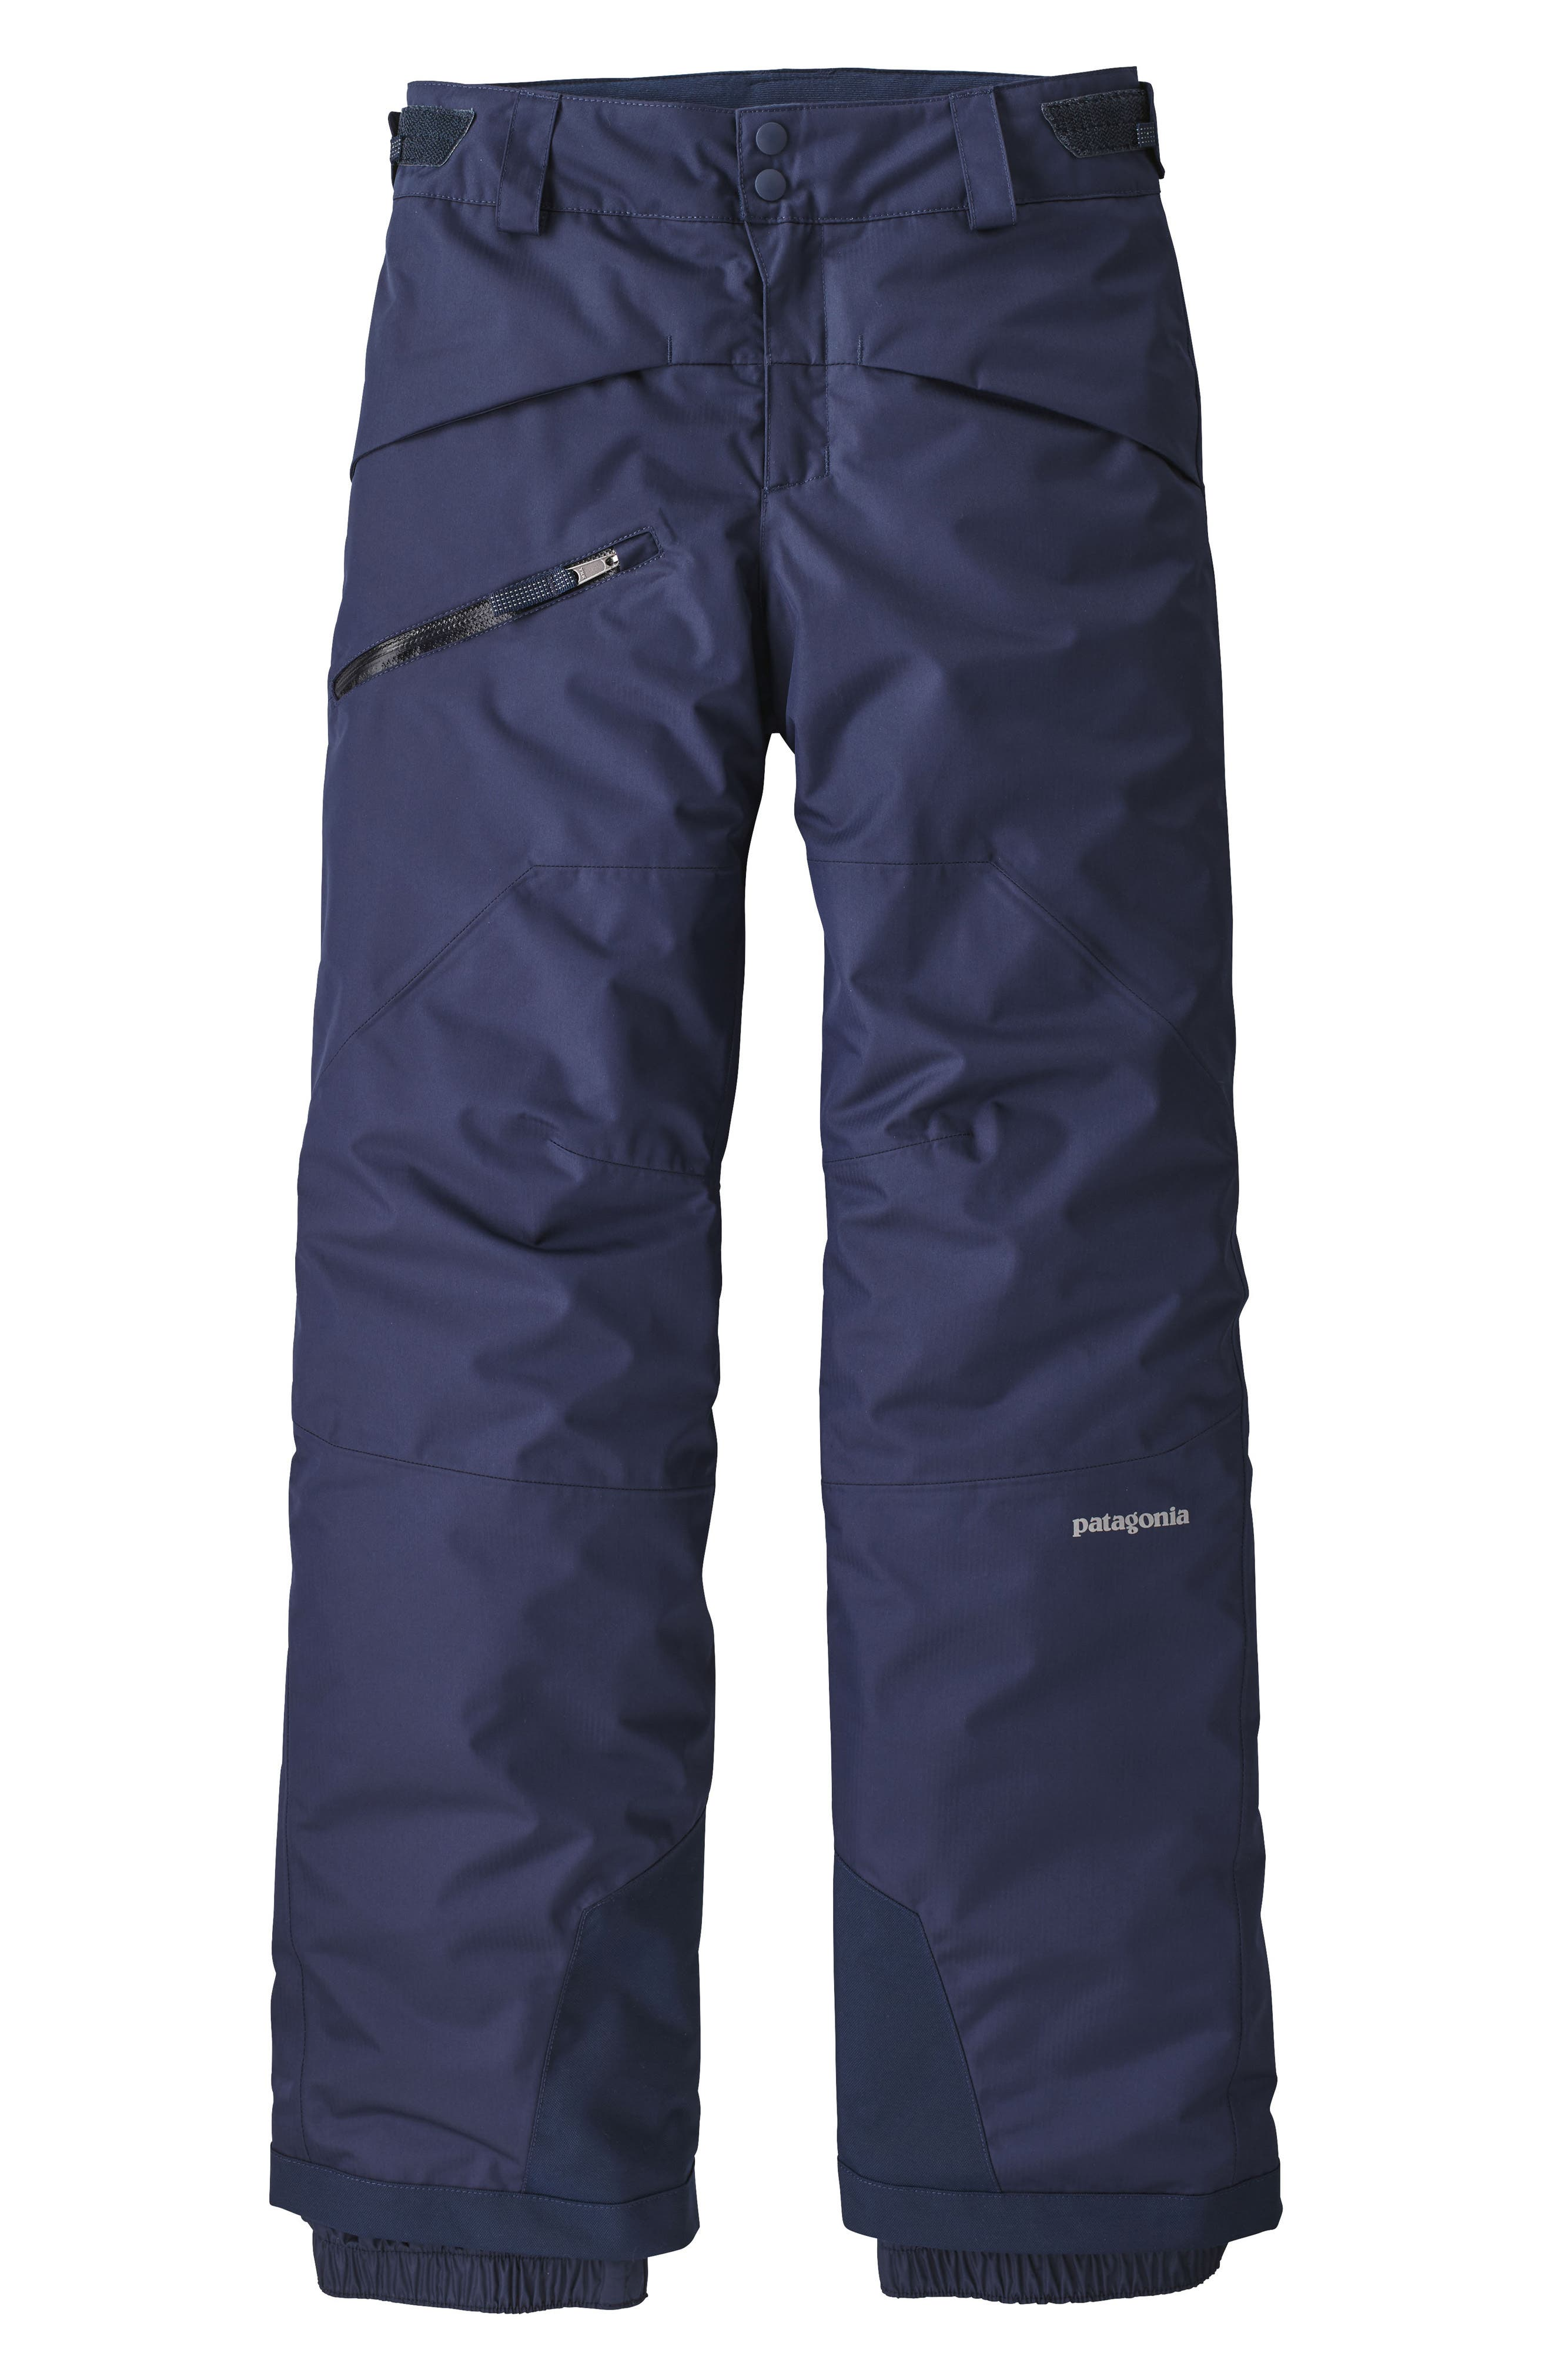 Boys Patagonia Snowshot Insulated Snow Pants Size L (12)  Blue